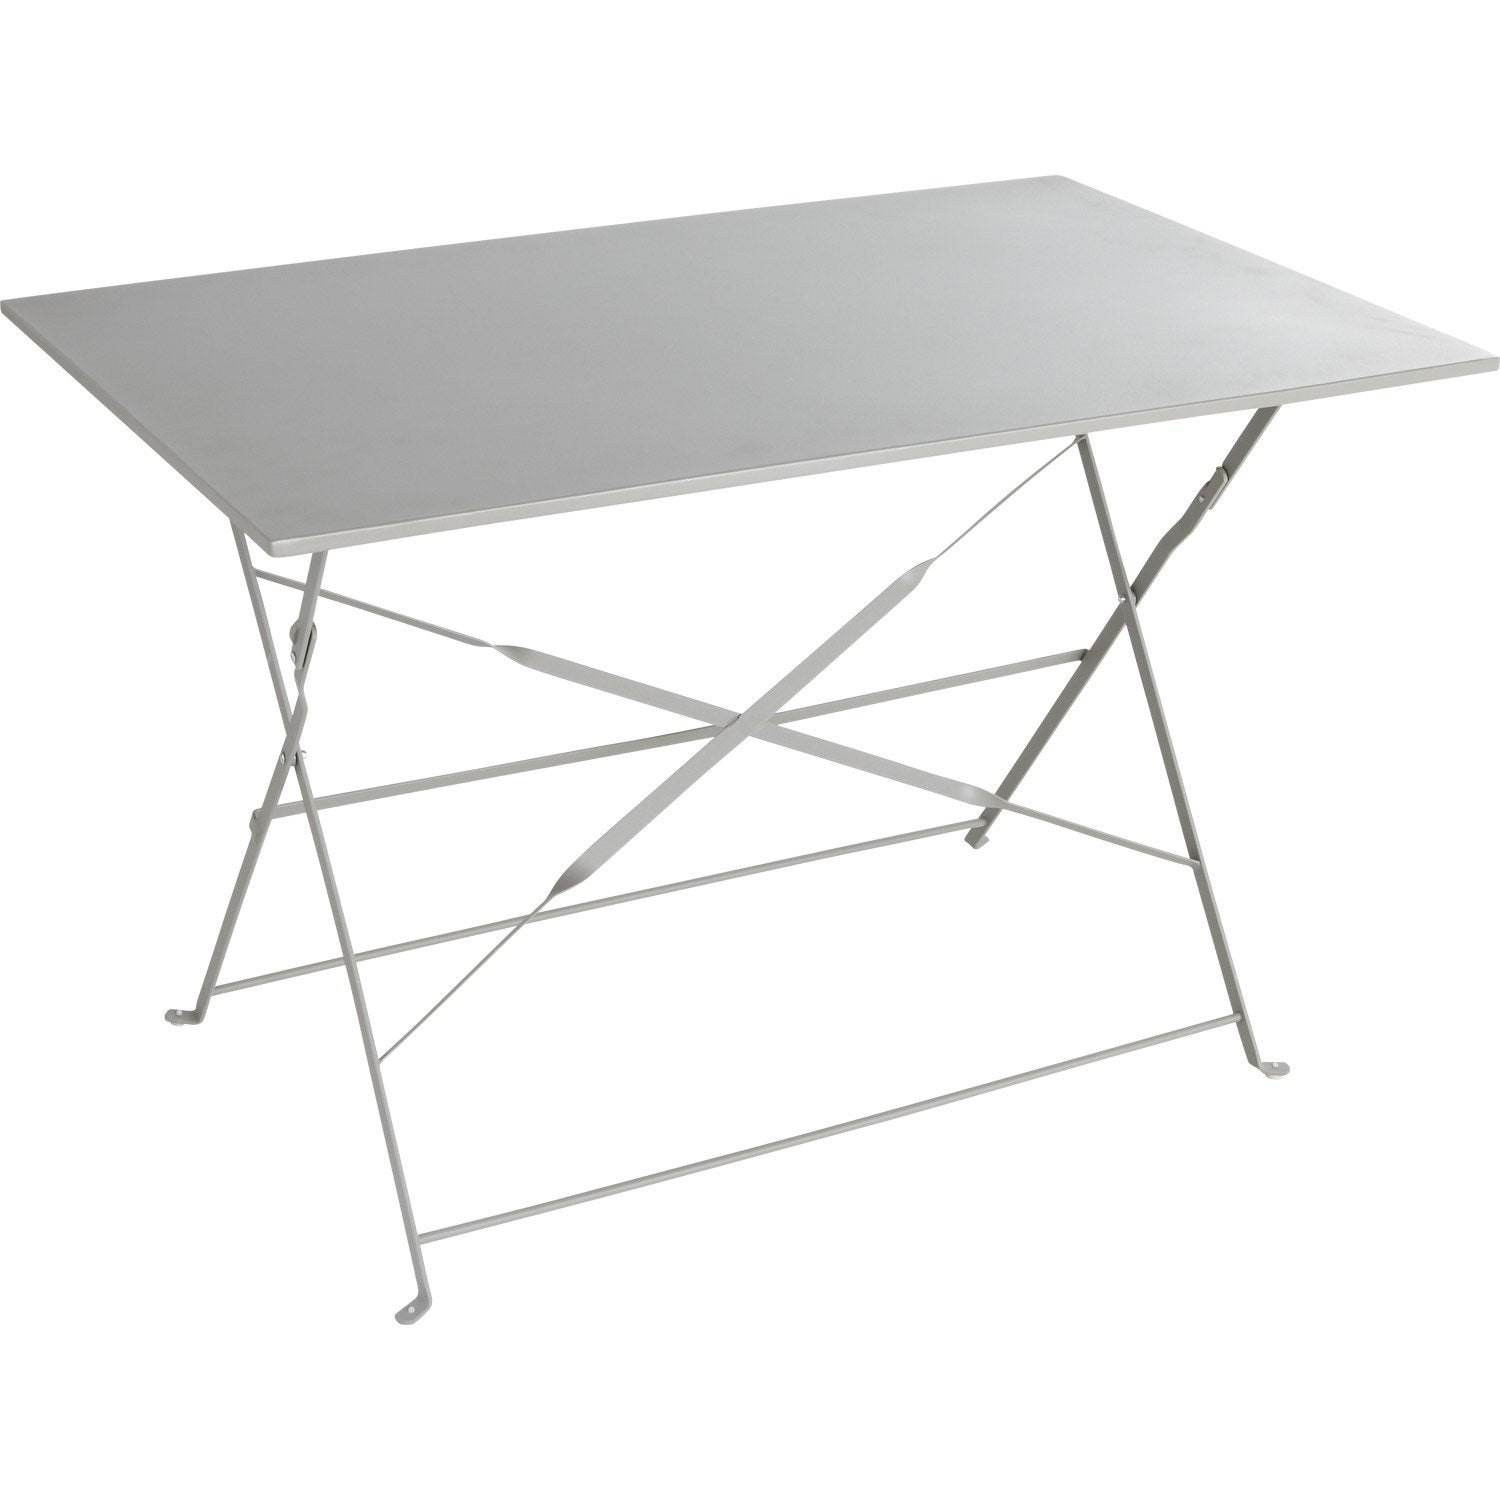 Table de jardin naterial flore rectangulaire gris 4 - Table pliante leroy merlin ...